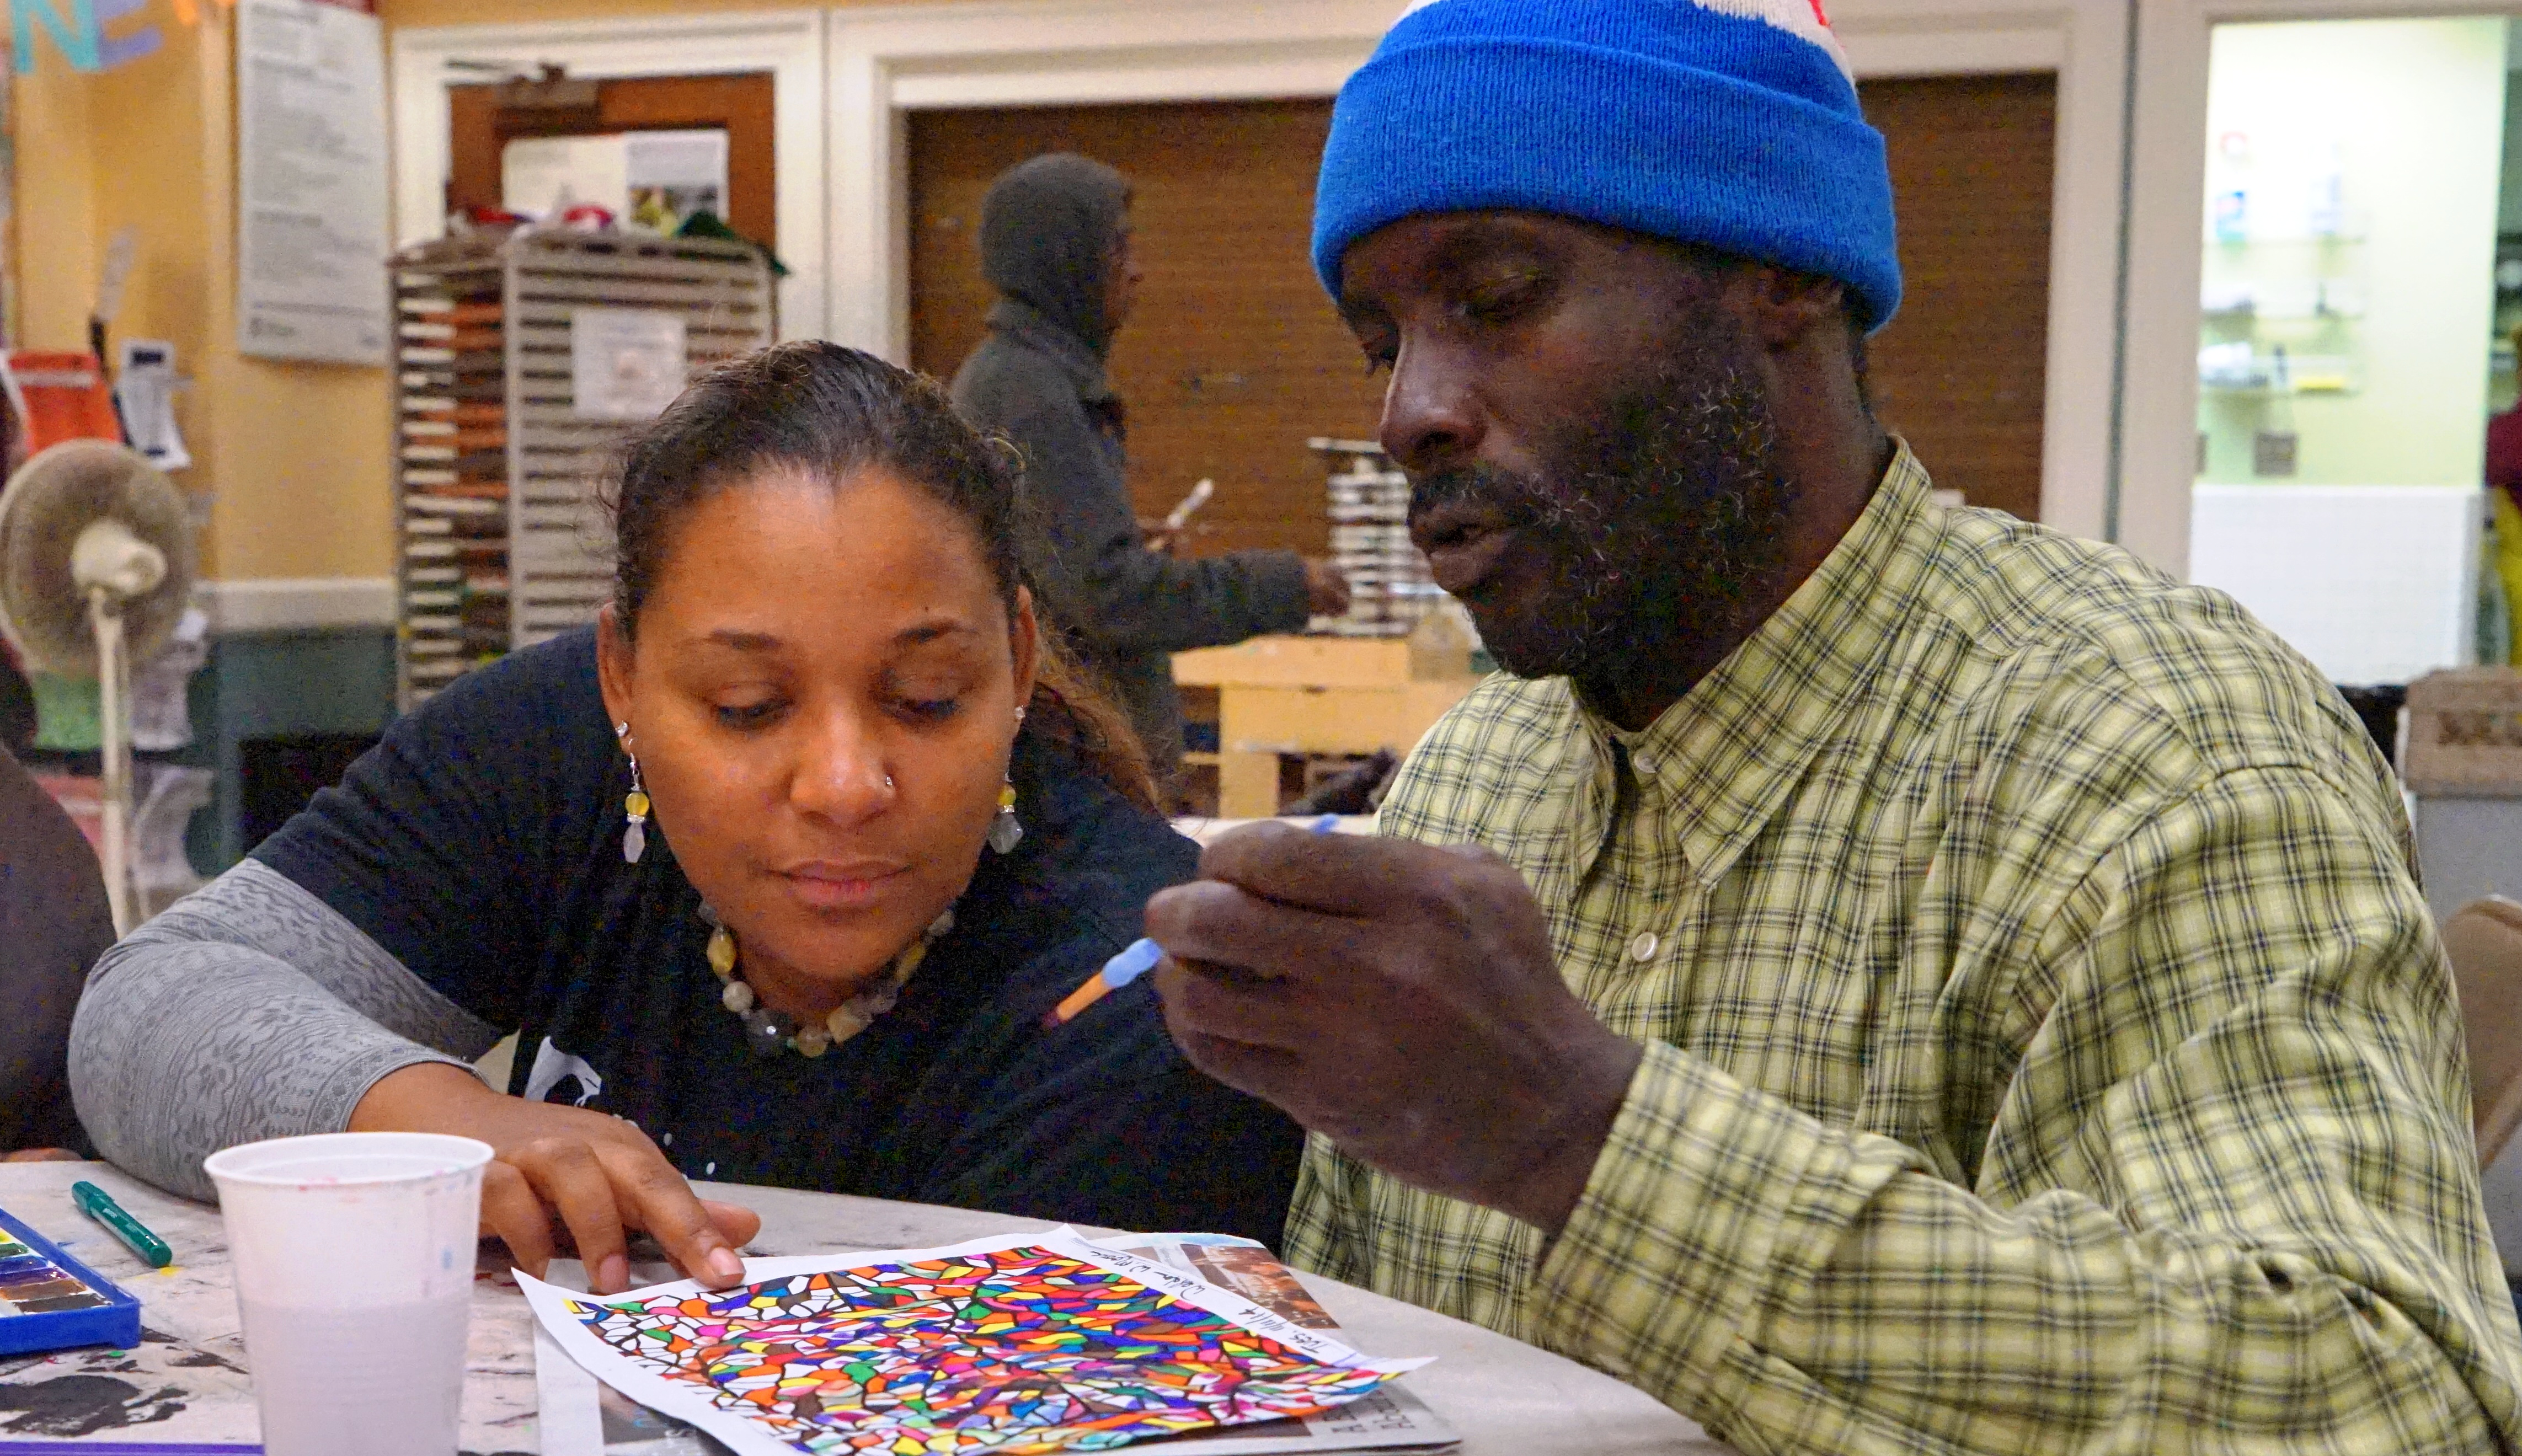 A woman pointing at a piece of artwork on a table that a homeless man is coloring